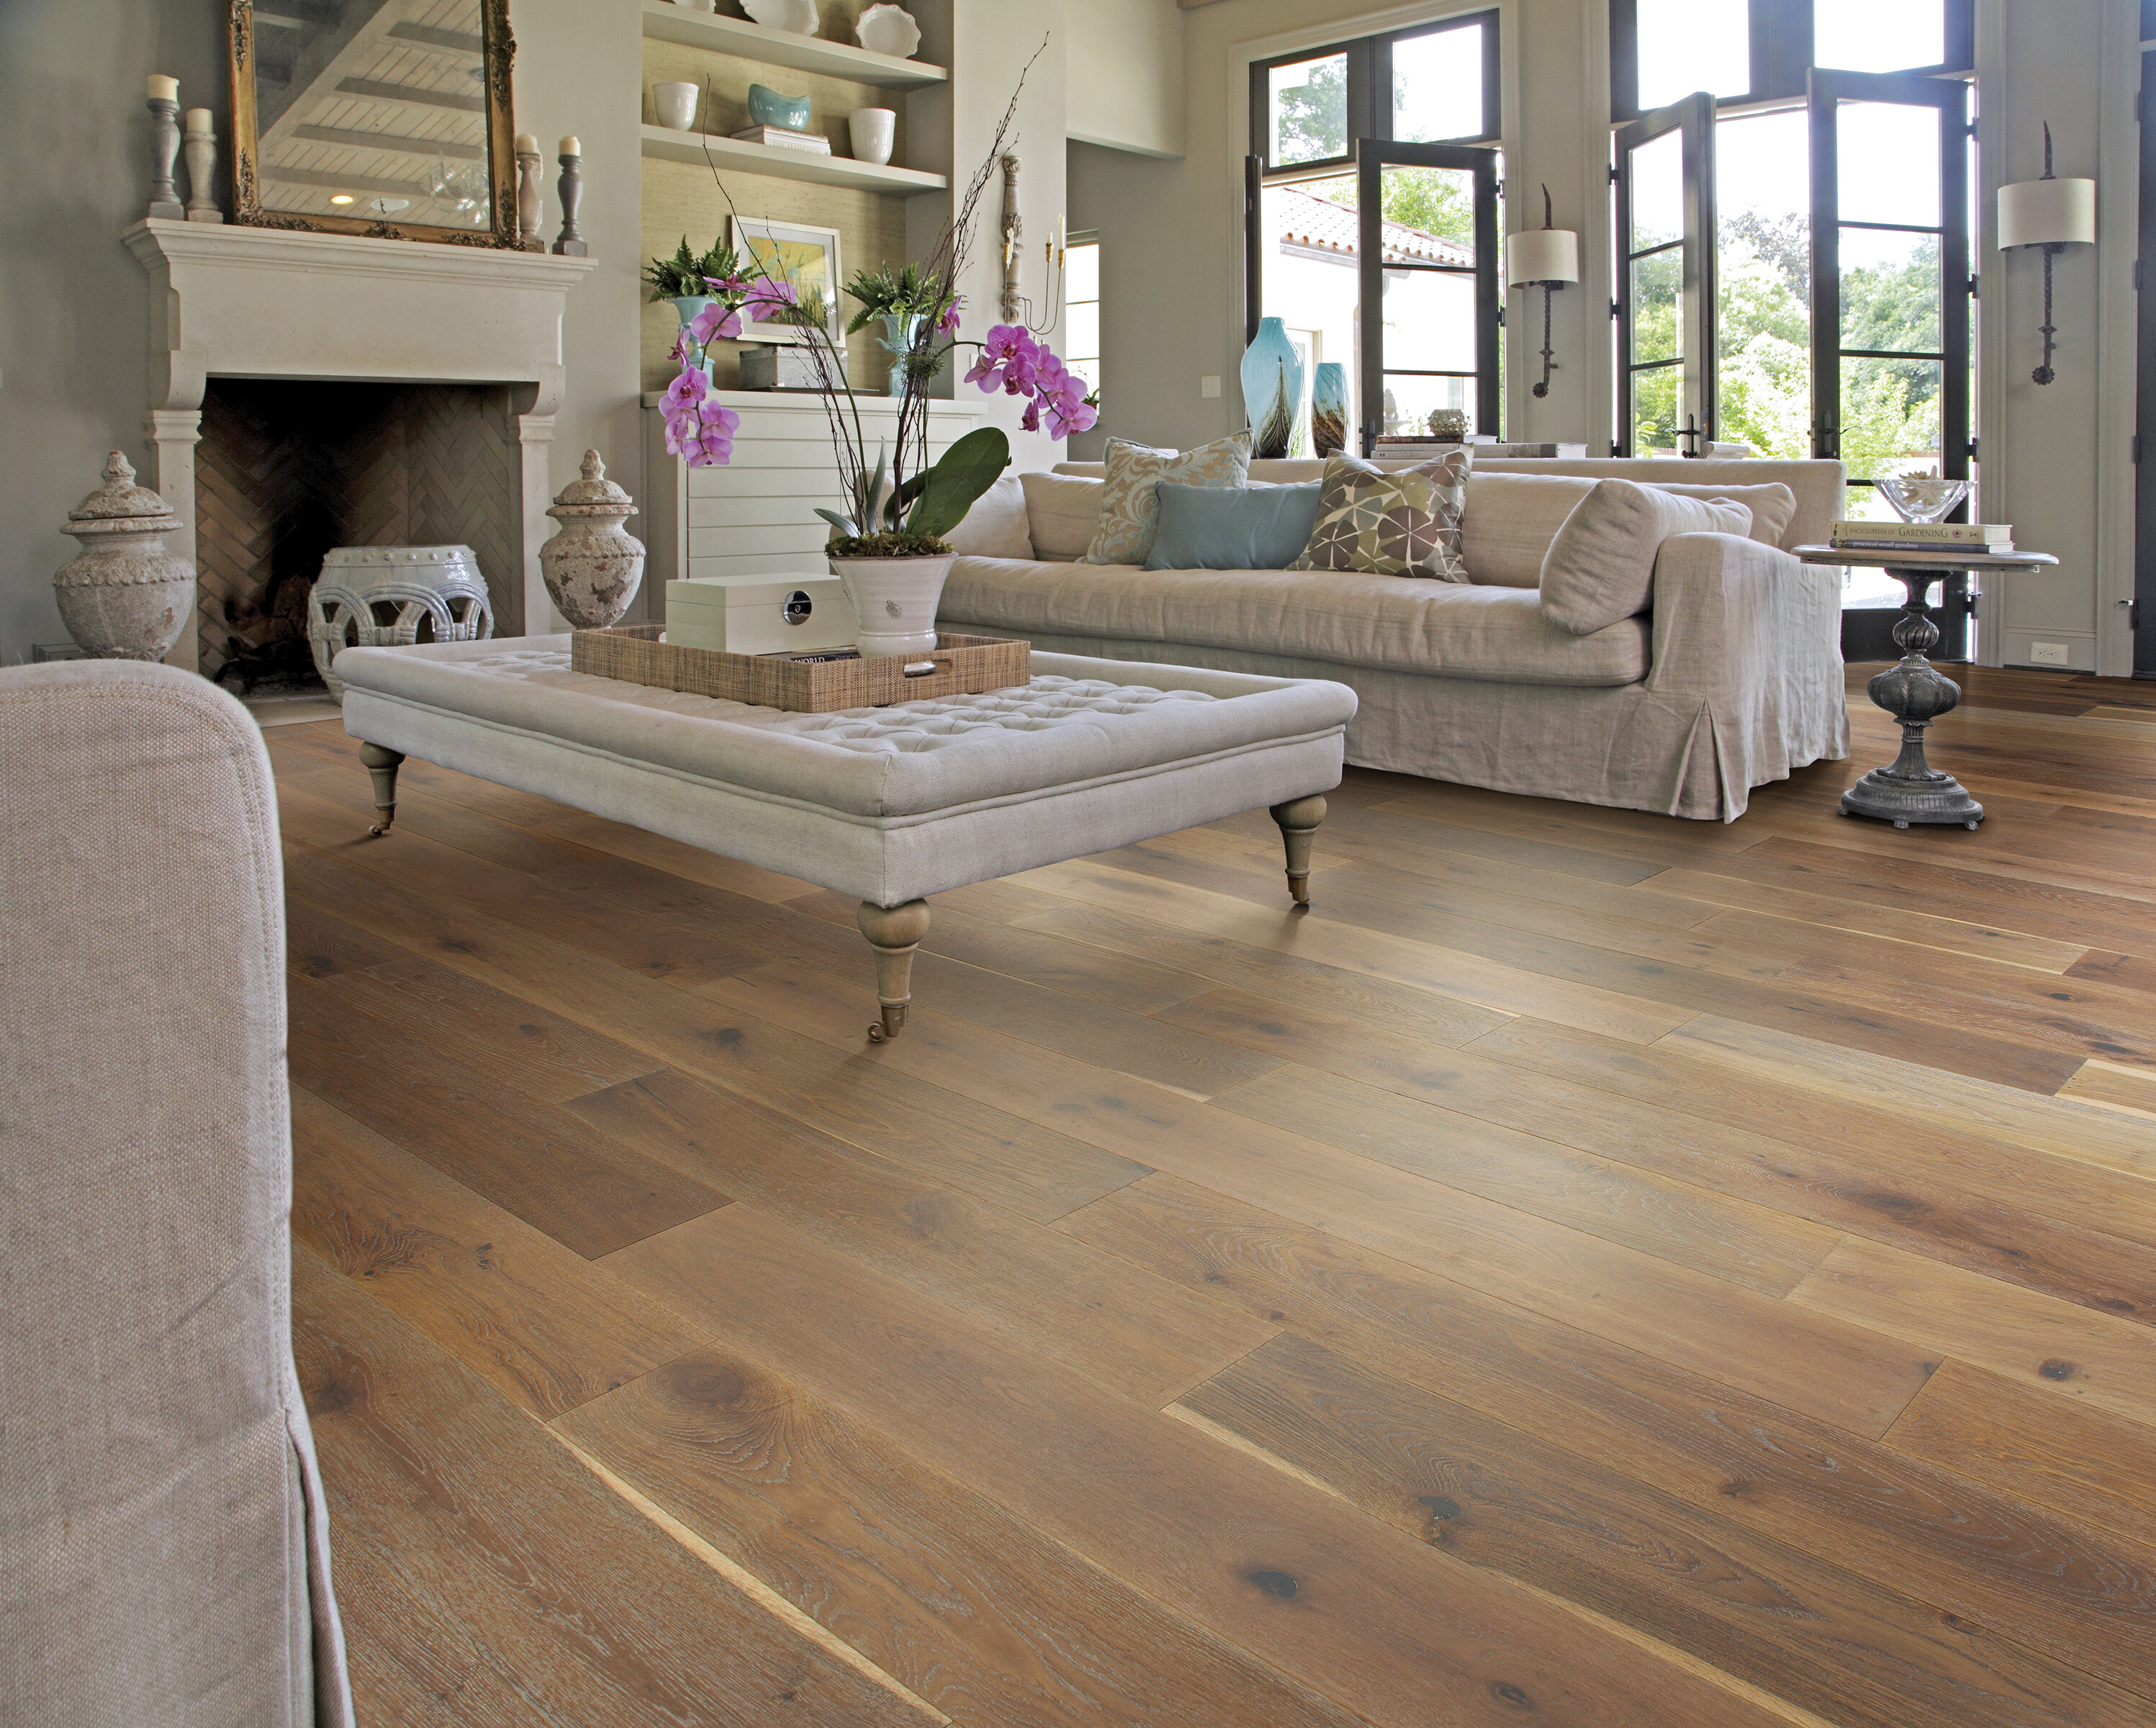 Shaw Floors Scottsmoor Dunedin 7 1 2 Quot Engineered Oak